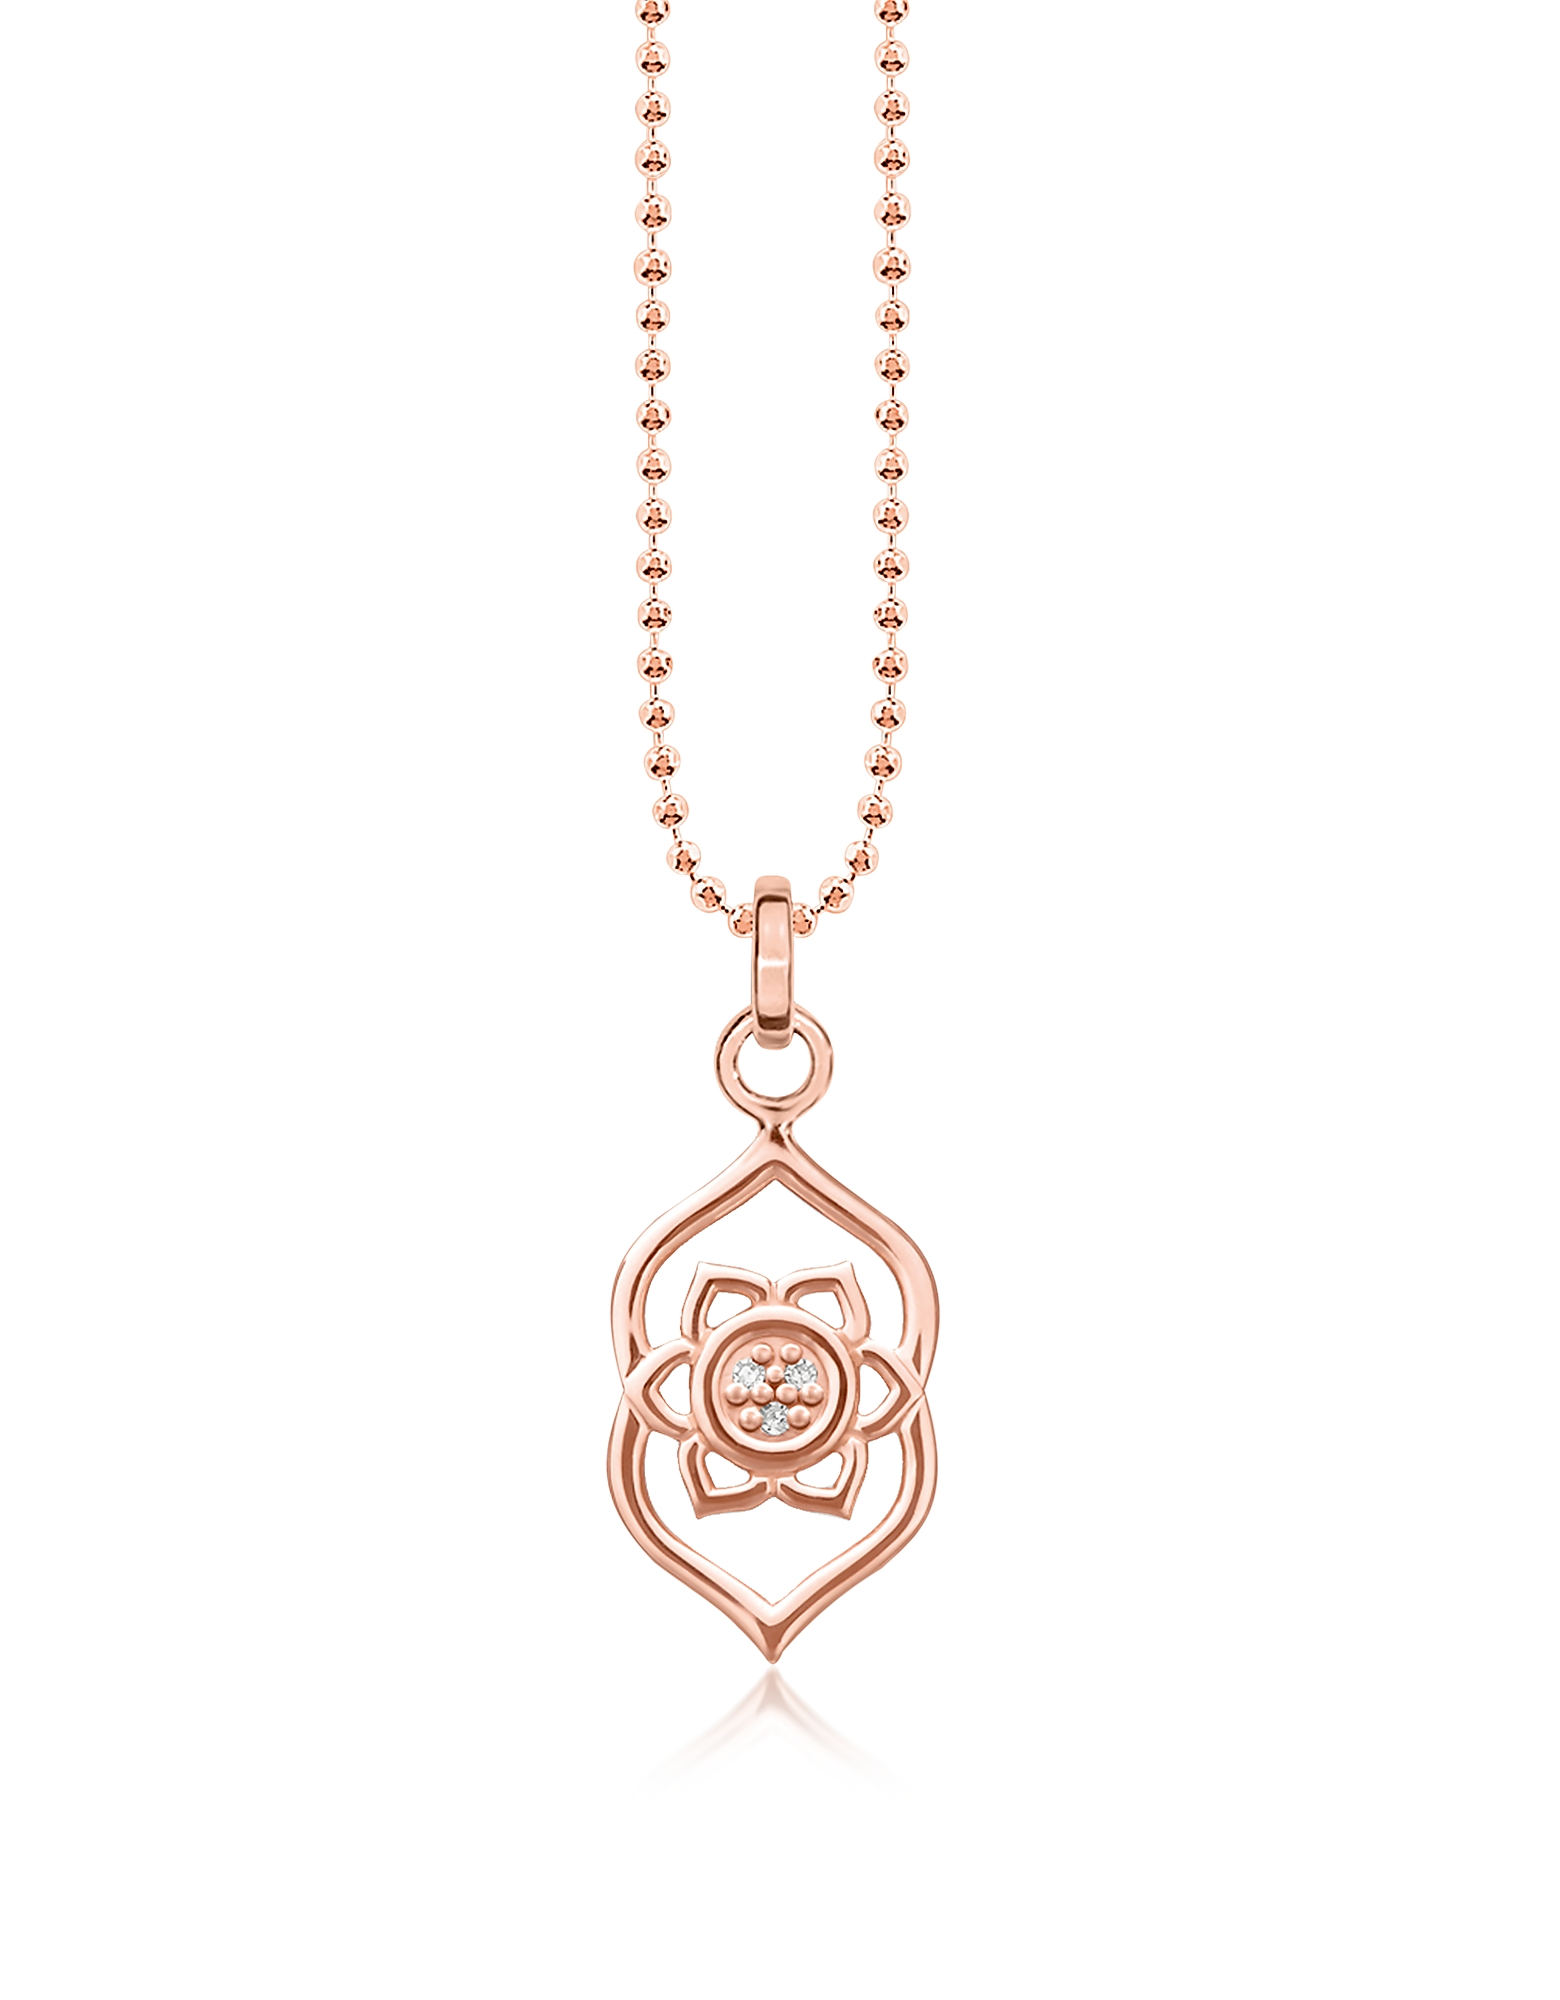 Thomas Sabo Necklaces, Third Eye Chakra Rose Gold Plated Sterling Silver Necklace w/White Zirconia